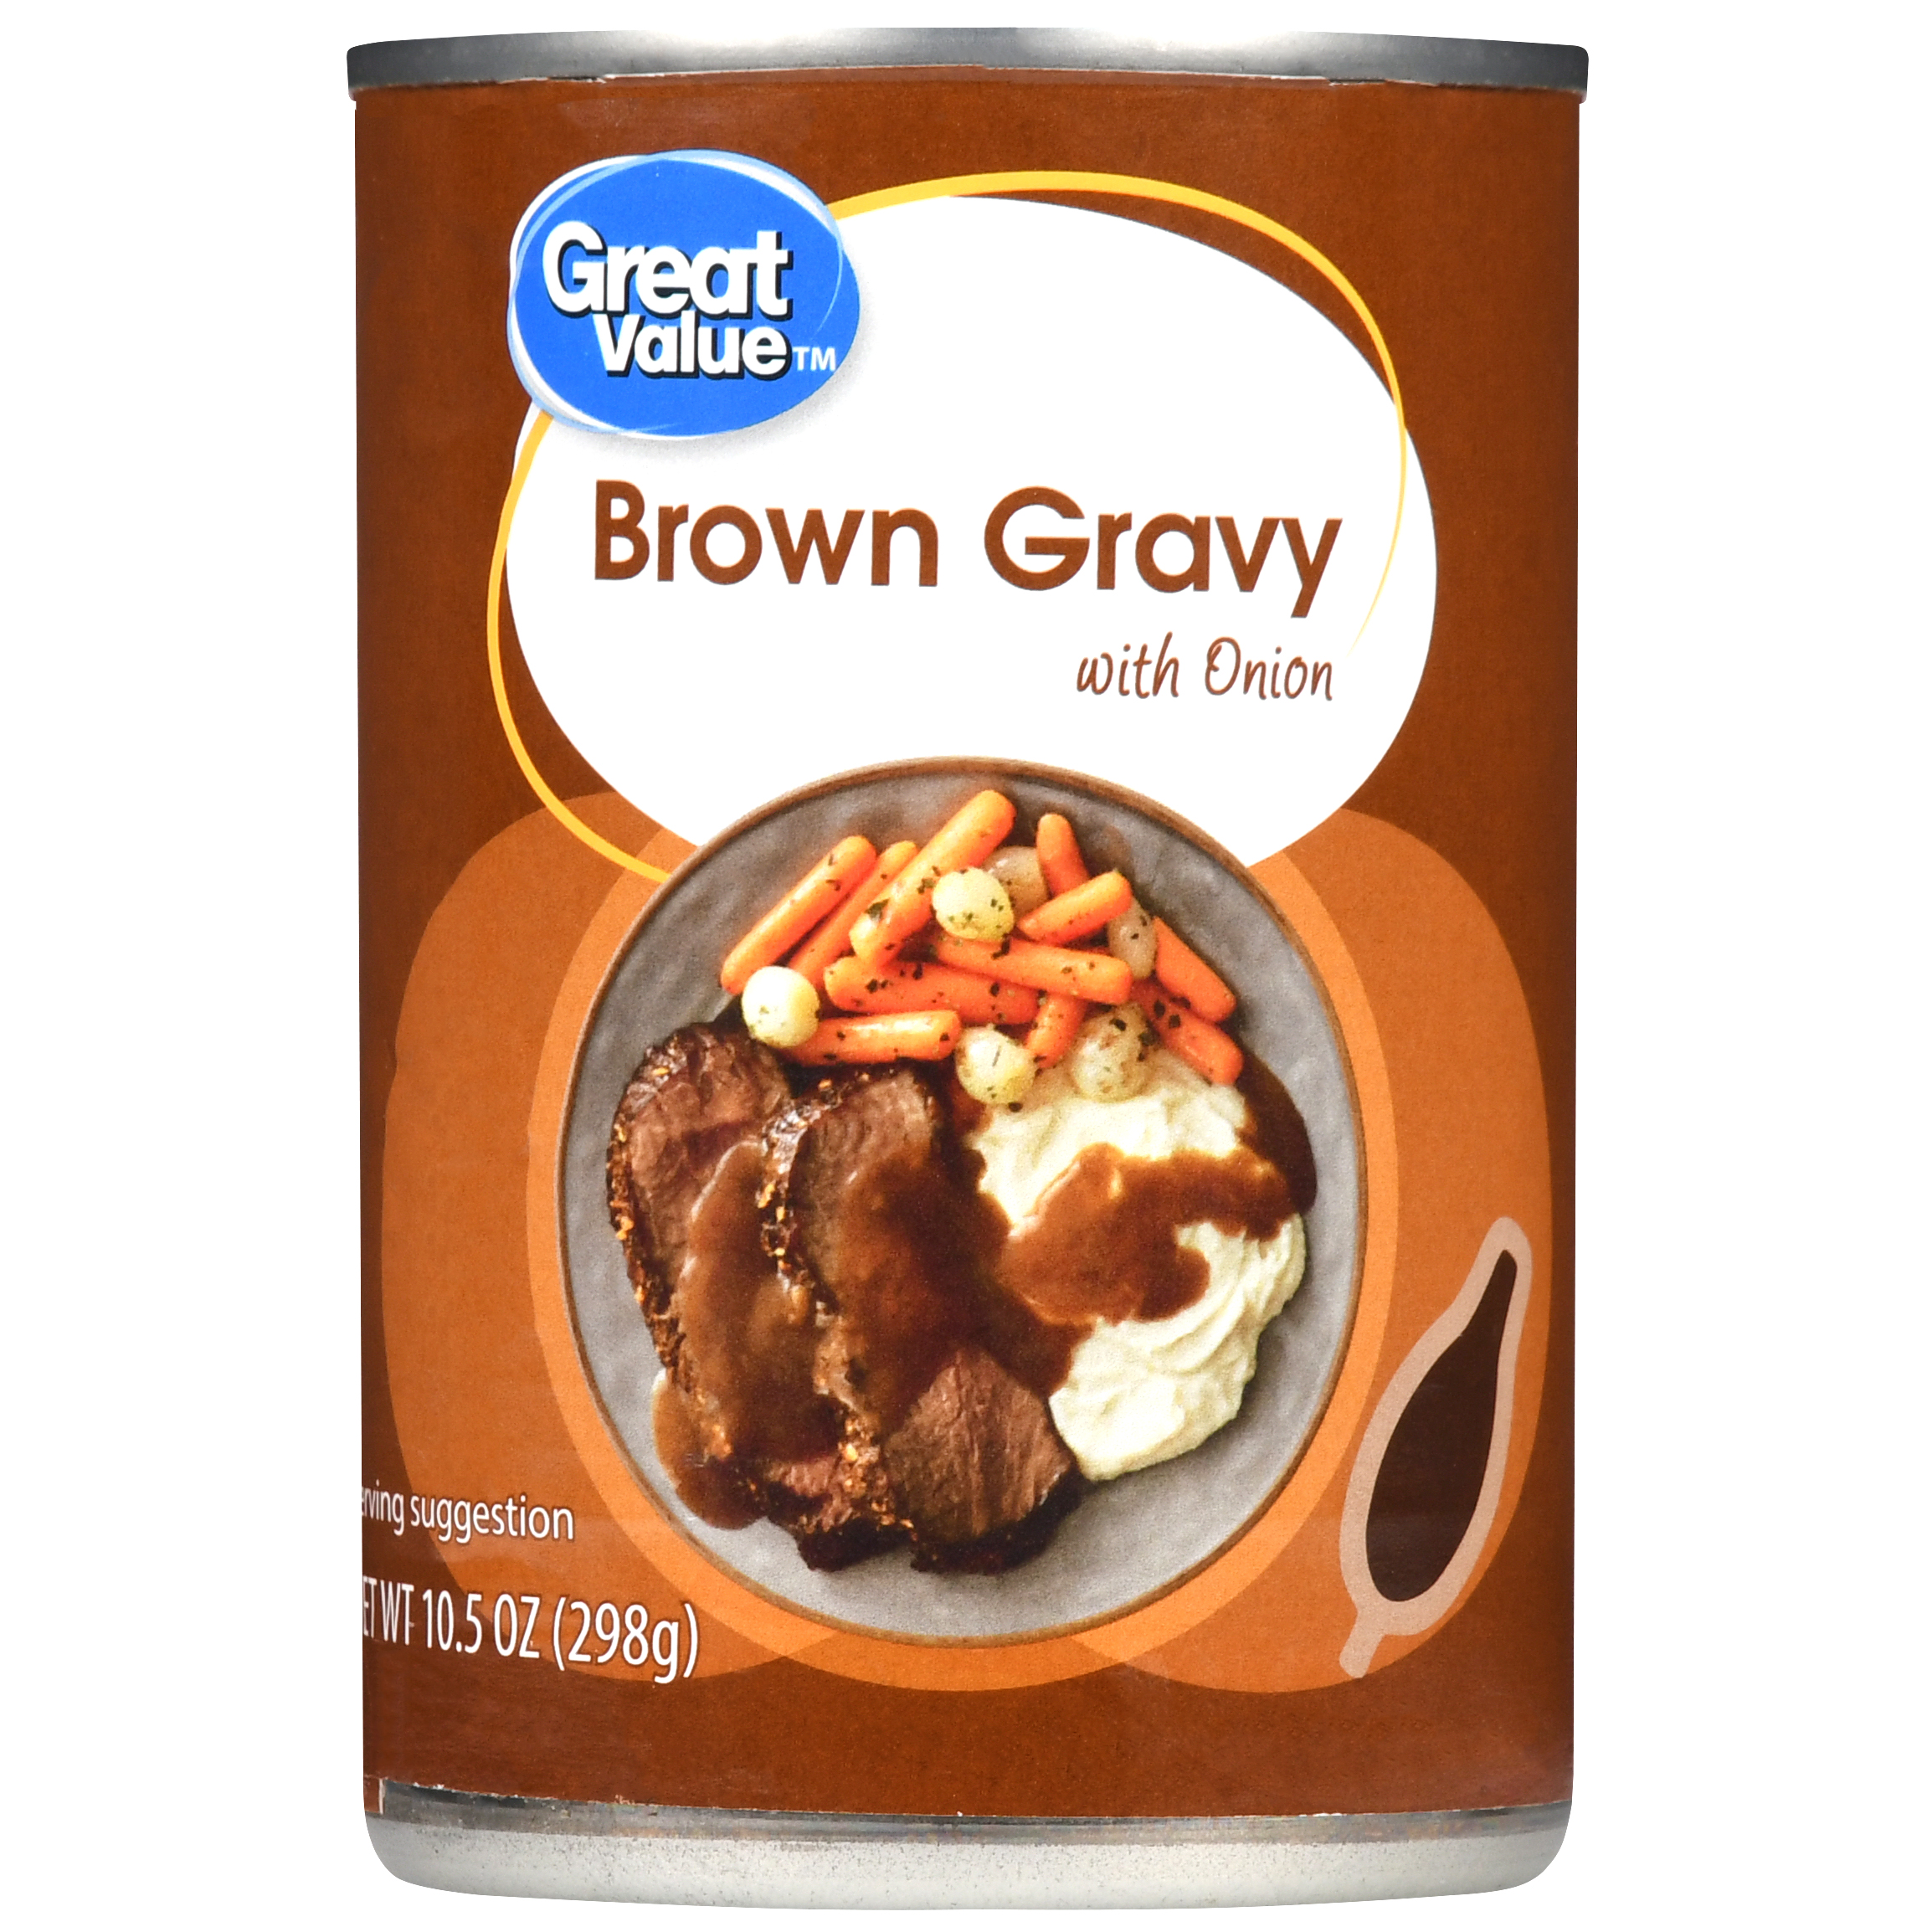 Great Value Brown Gravy with Onion, 10.5 oz